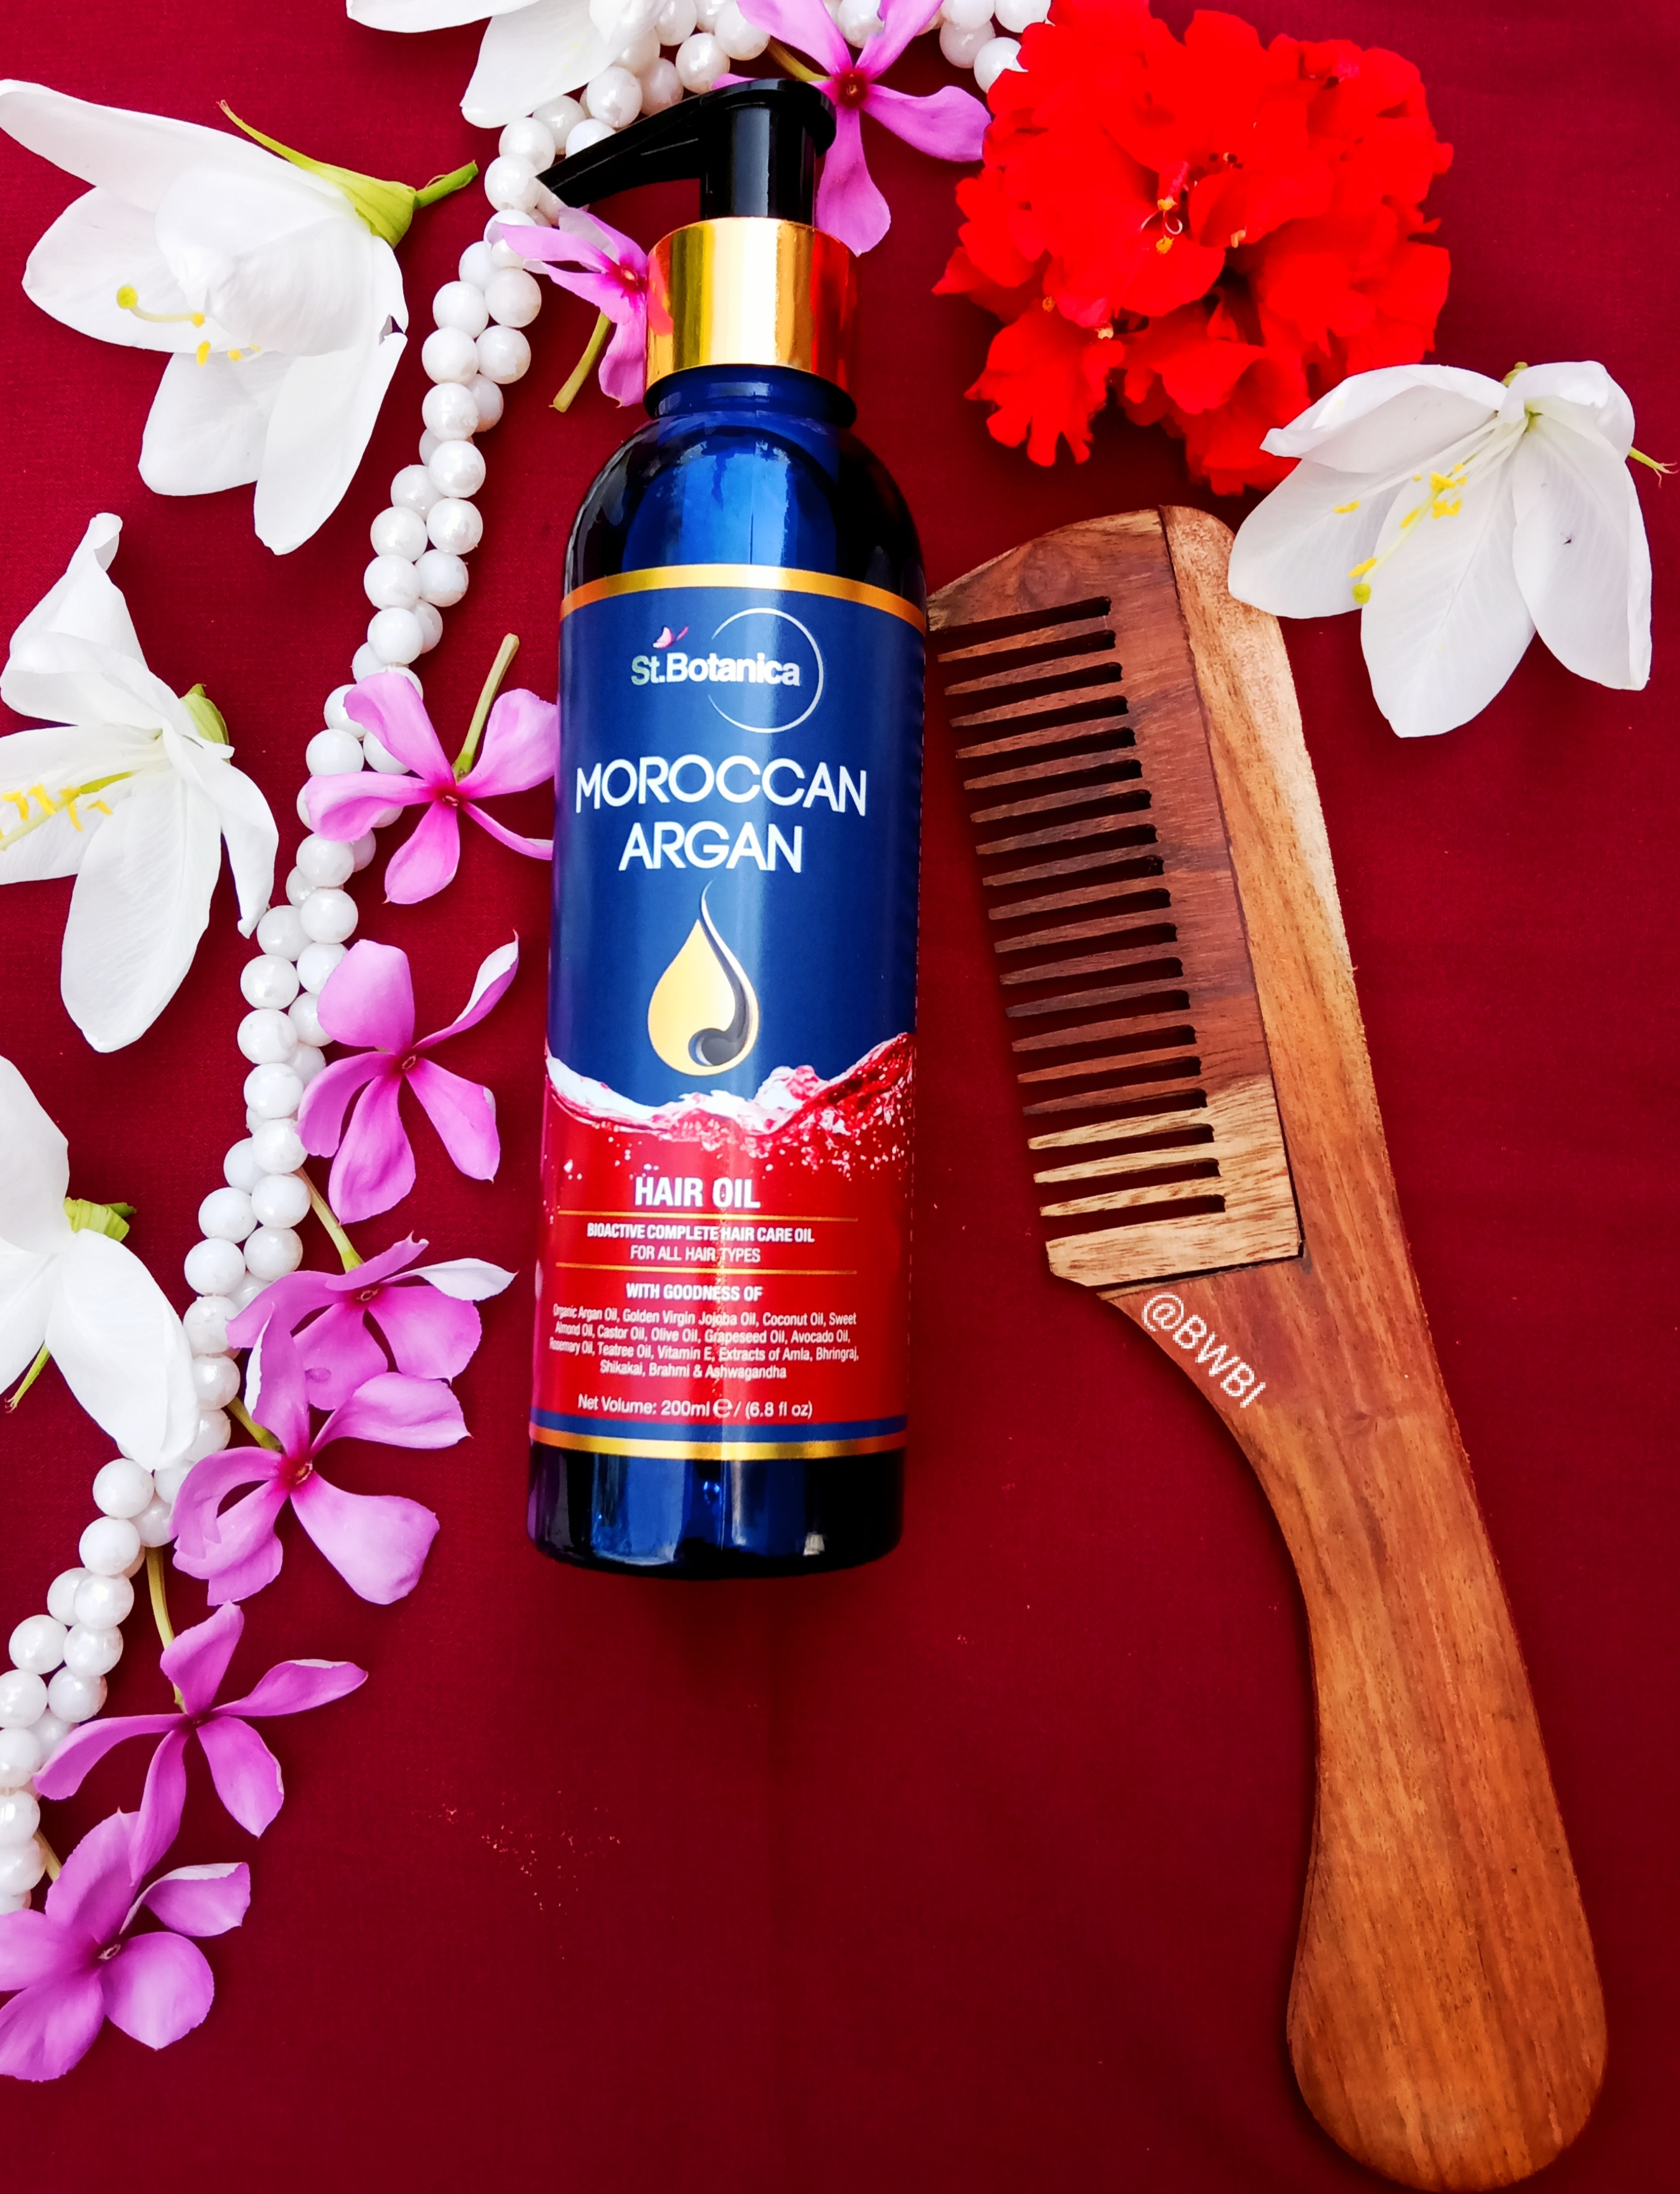 St.Botanica Moroccan Argan Hair Growth Oil-Best hair oil for hair growth-By indranireviews